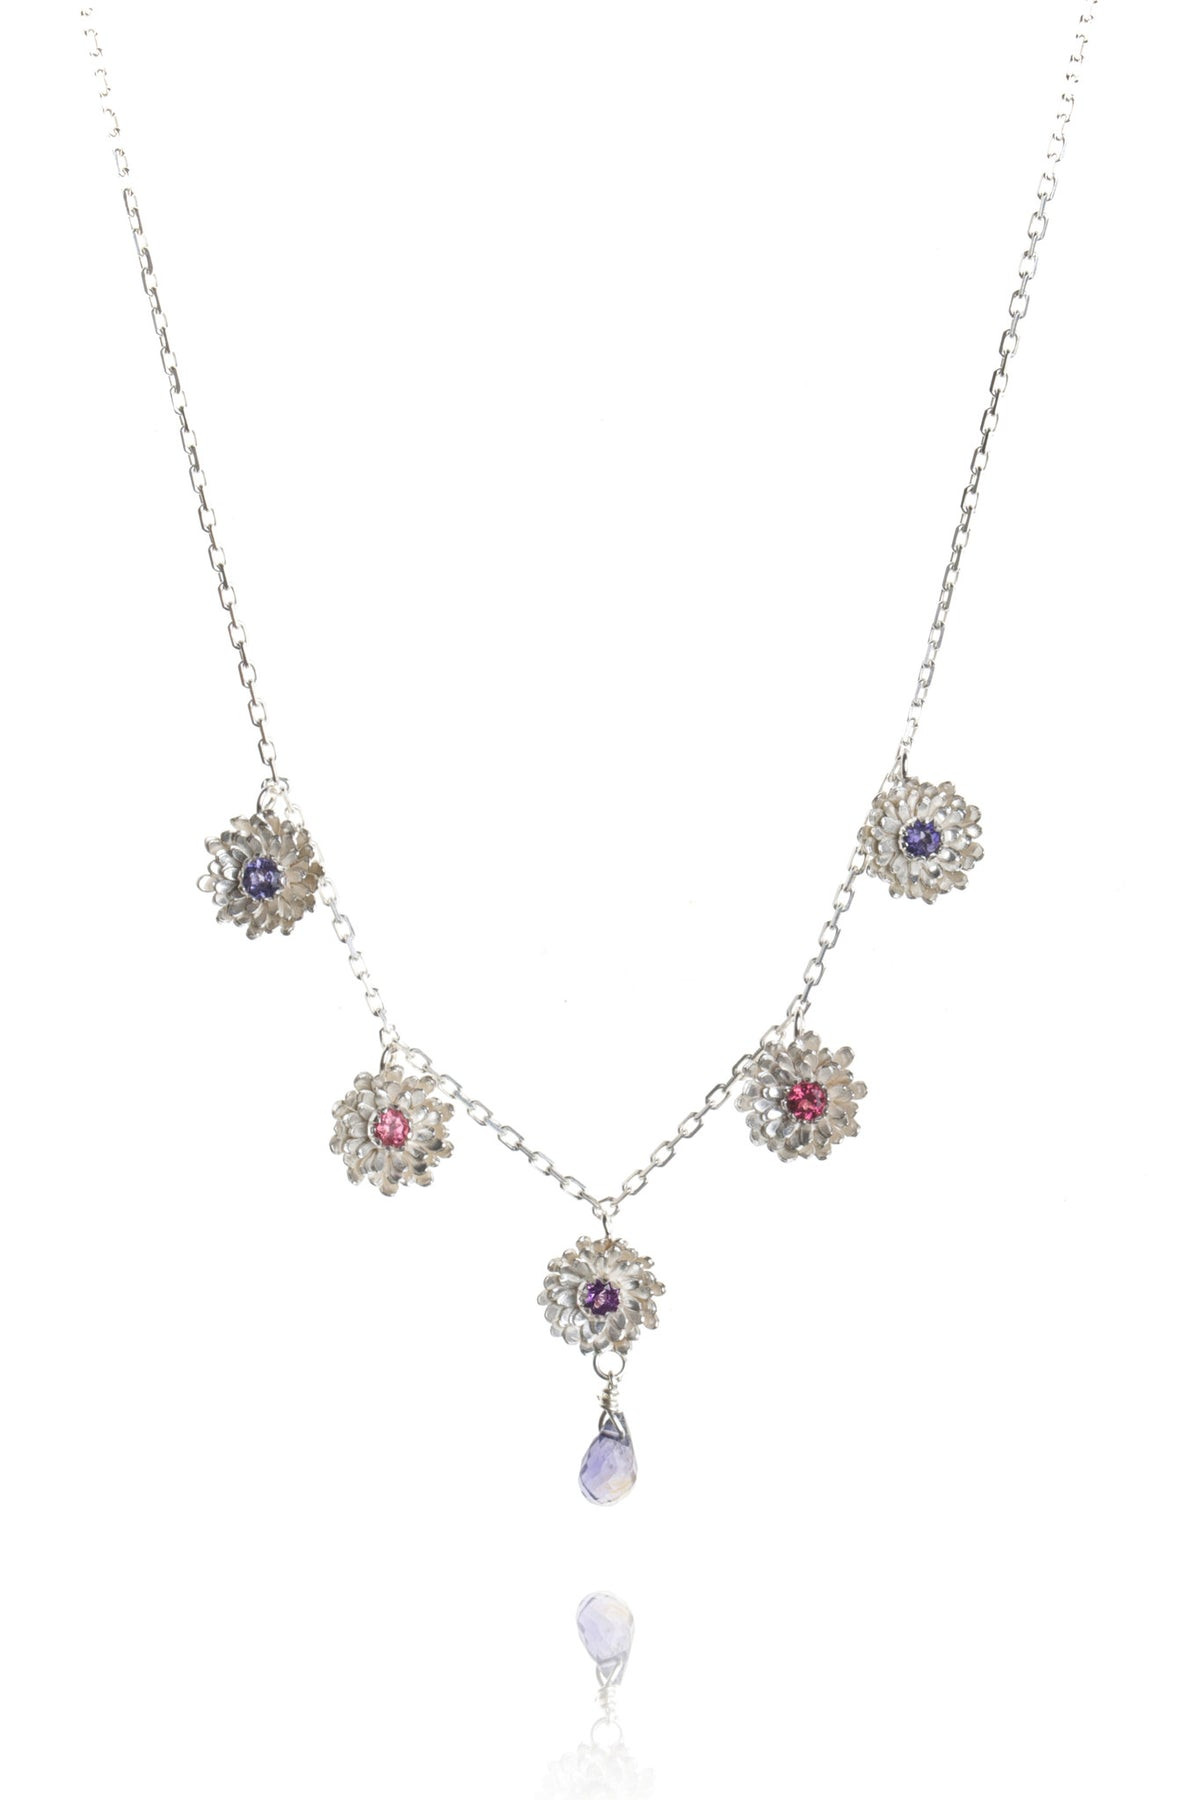 925 Sterling Silver with pink tourmalines, iolites, amethyst and iolite drop